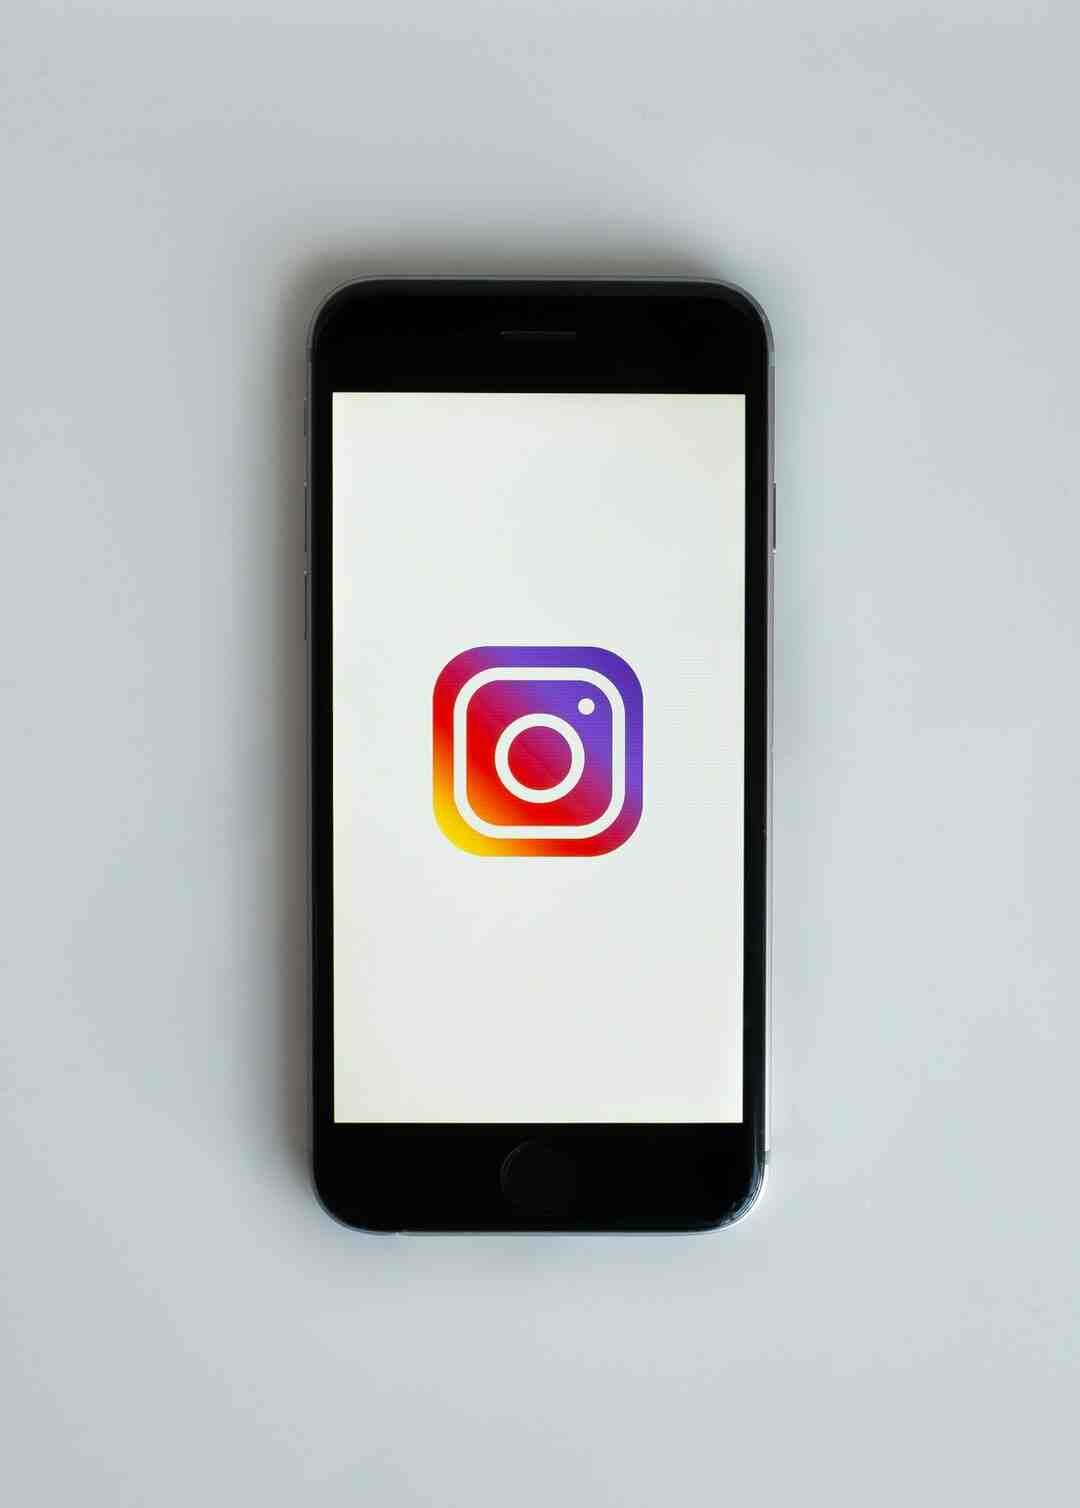 What are the negatives of Instagram?